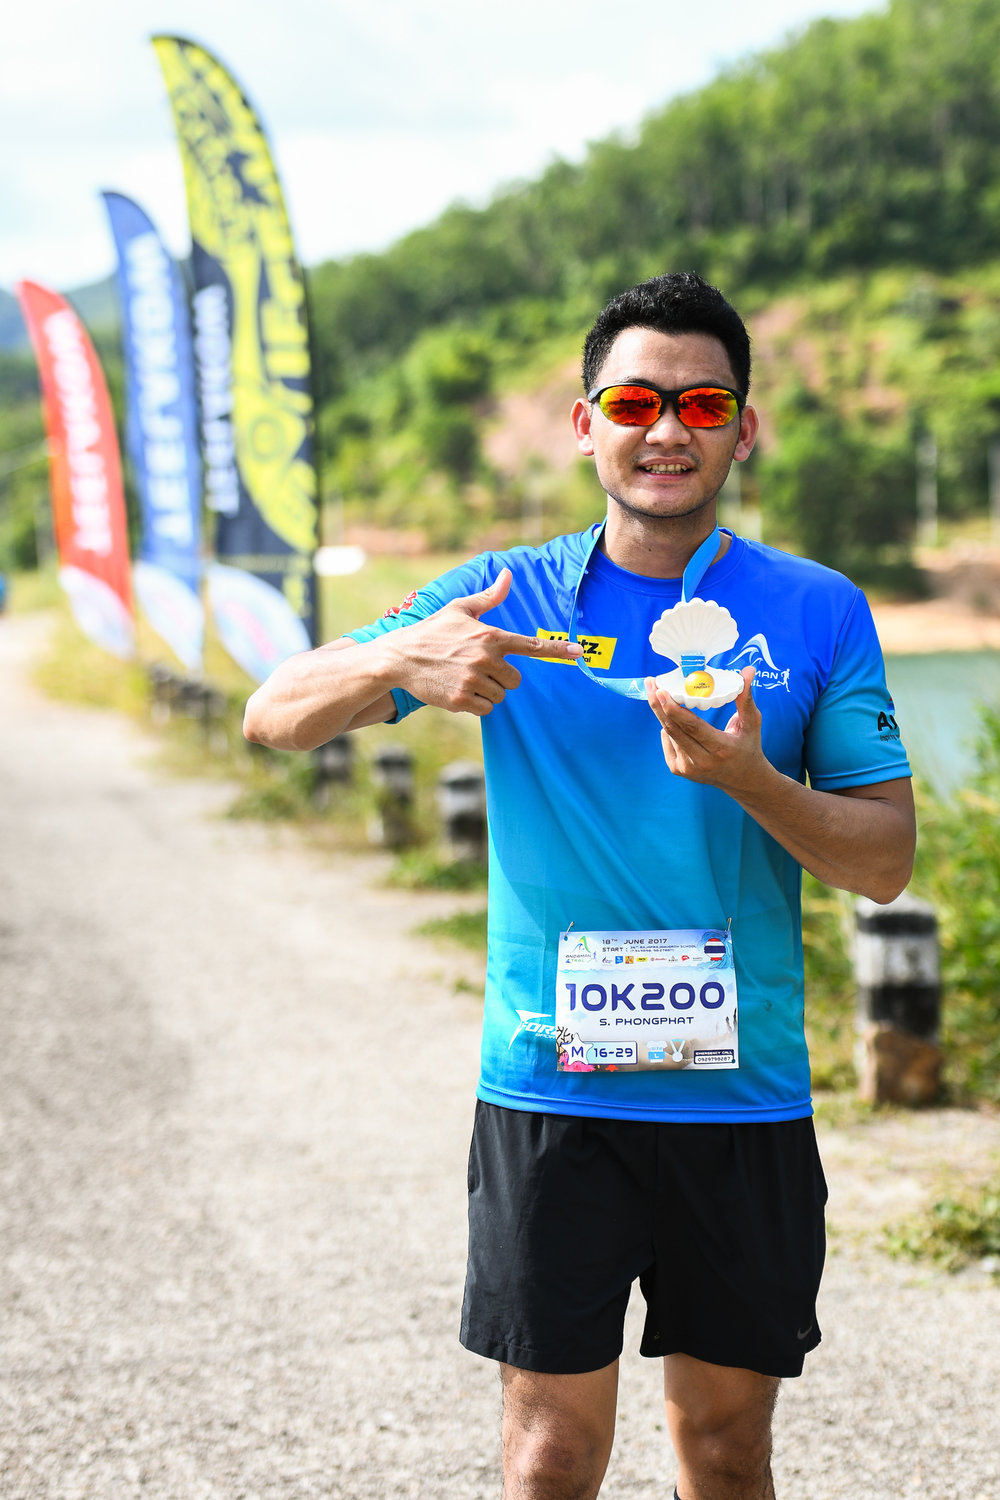 PHUKET, THAILAND - JUNE 18: Participant with his finishing medal at the Andaman Trails 2017 on June 18, 2017 at Ban Bang Niew Dam Reservoir Project, Phuket, Thailand. (Photo by: Naratip Srisupab/Thailand Photo SEALs Sports Photography)